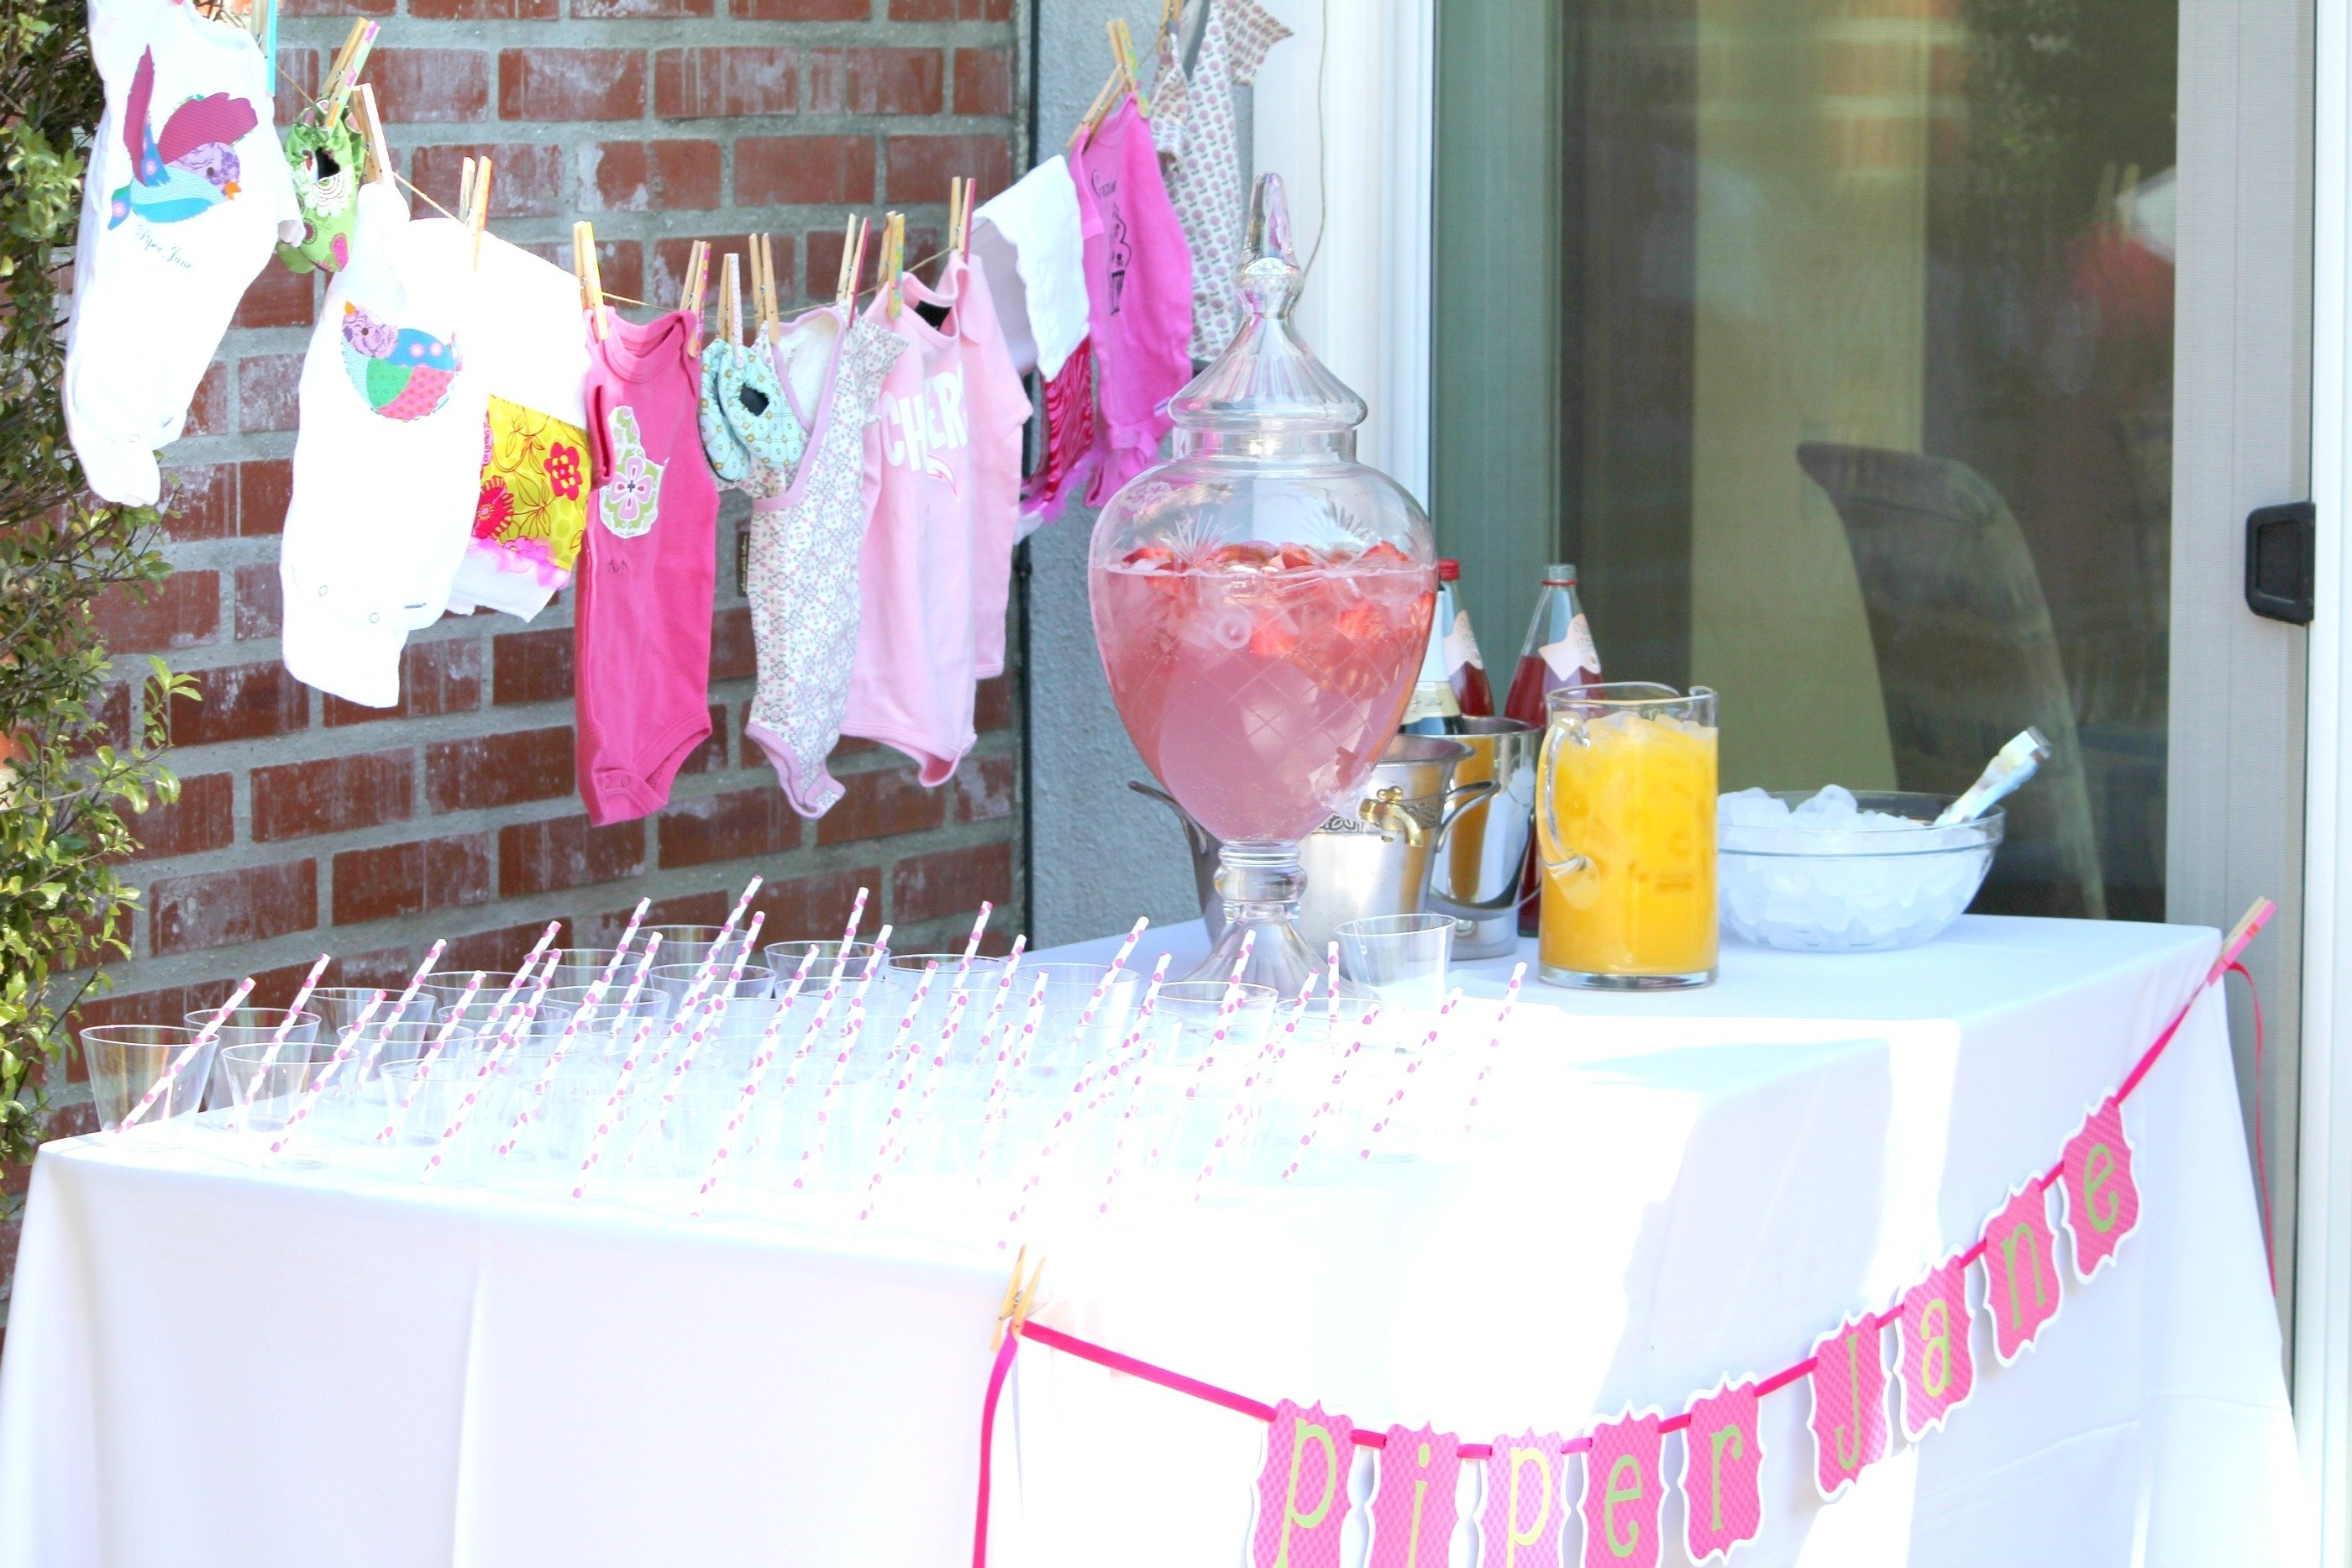 10 Nice Baby Shower Ideas For Girls Decorations photo mustache baby shower party supplies image